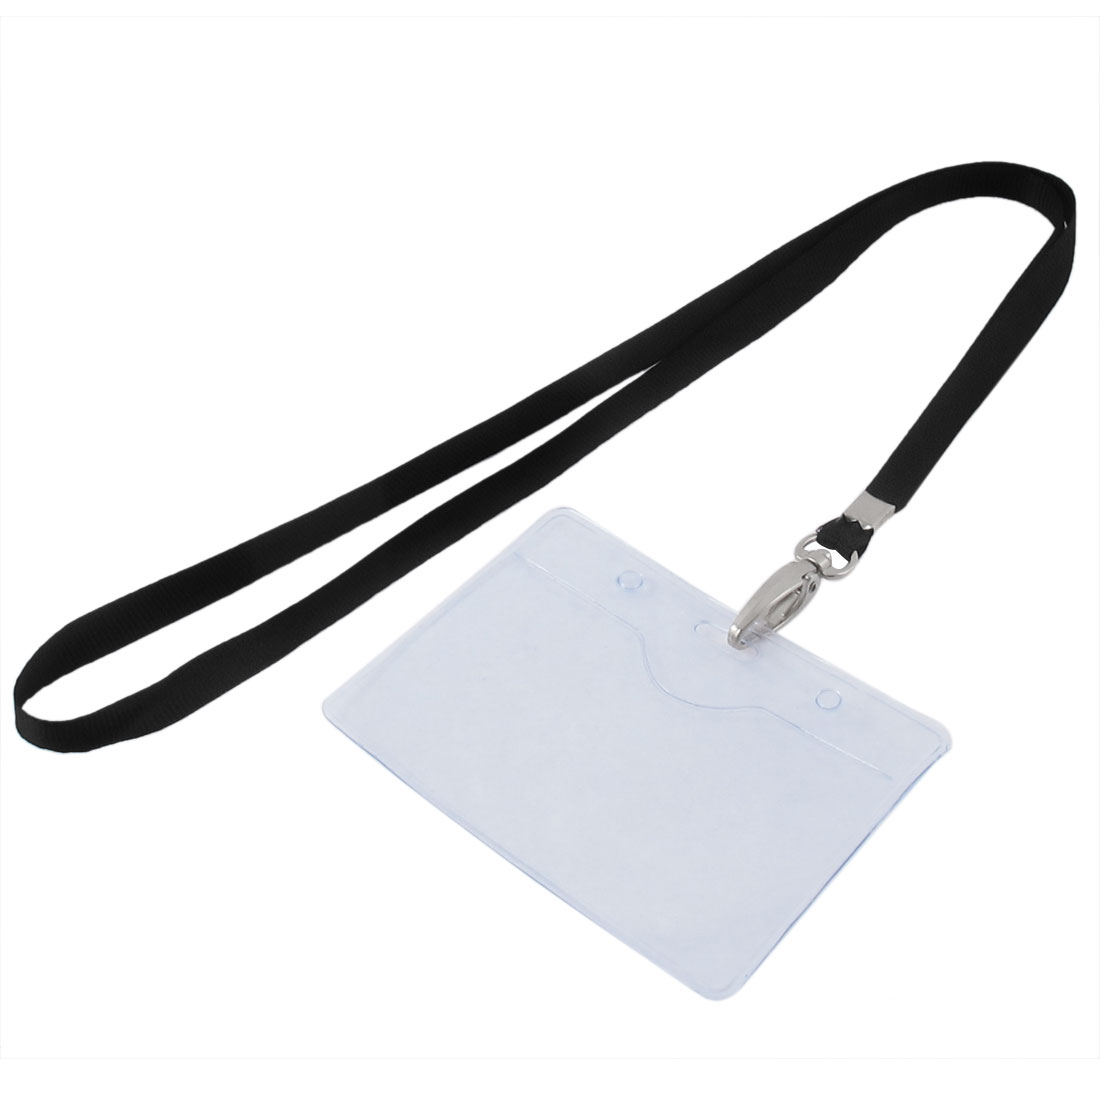 Lanyard Plastic Horizontal ID Work Employee Badge Card Holder Black Clear